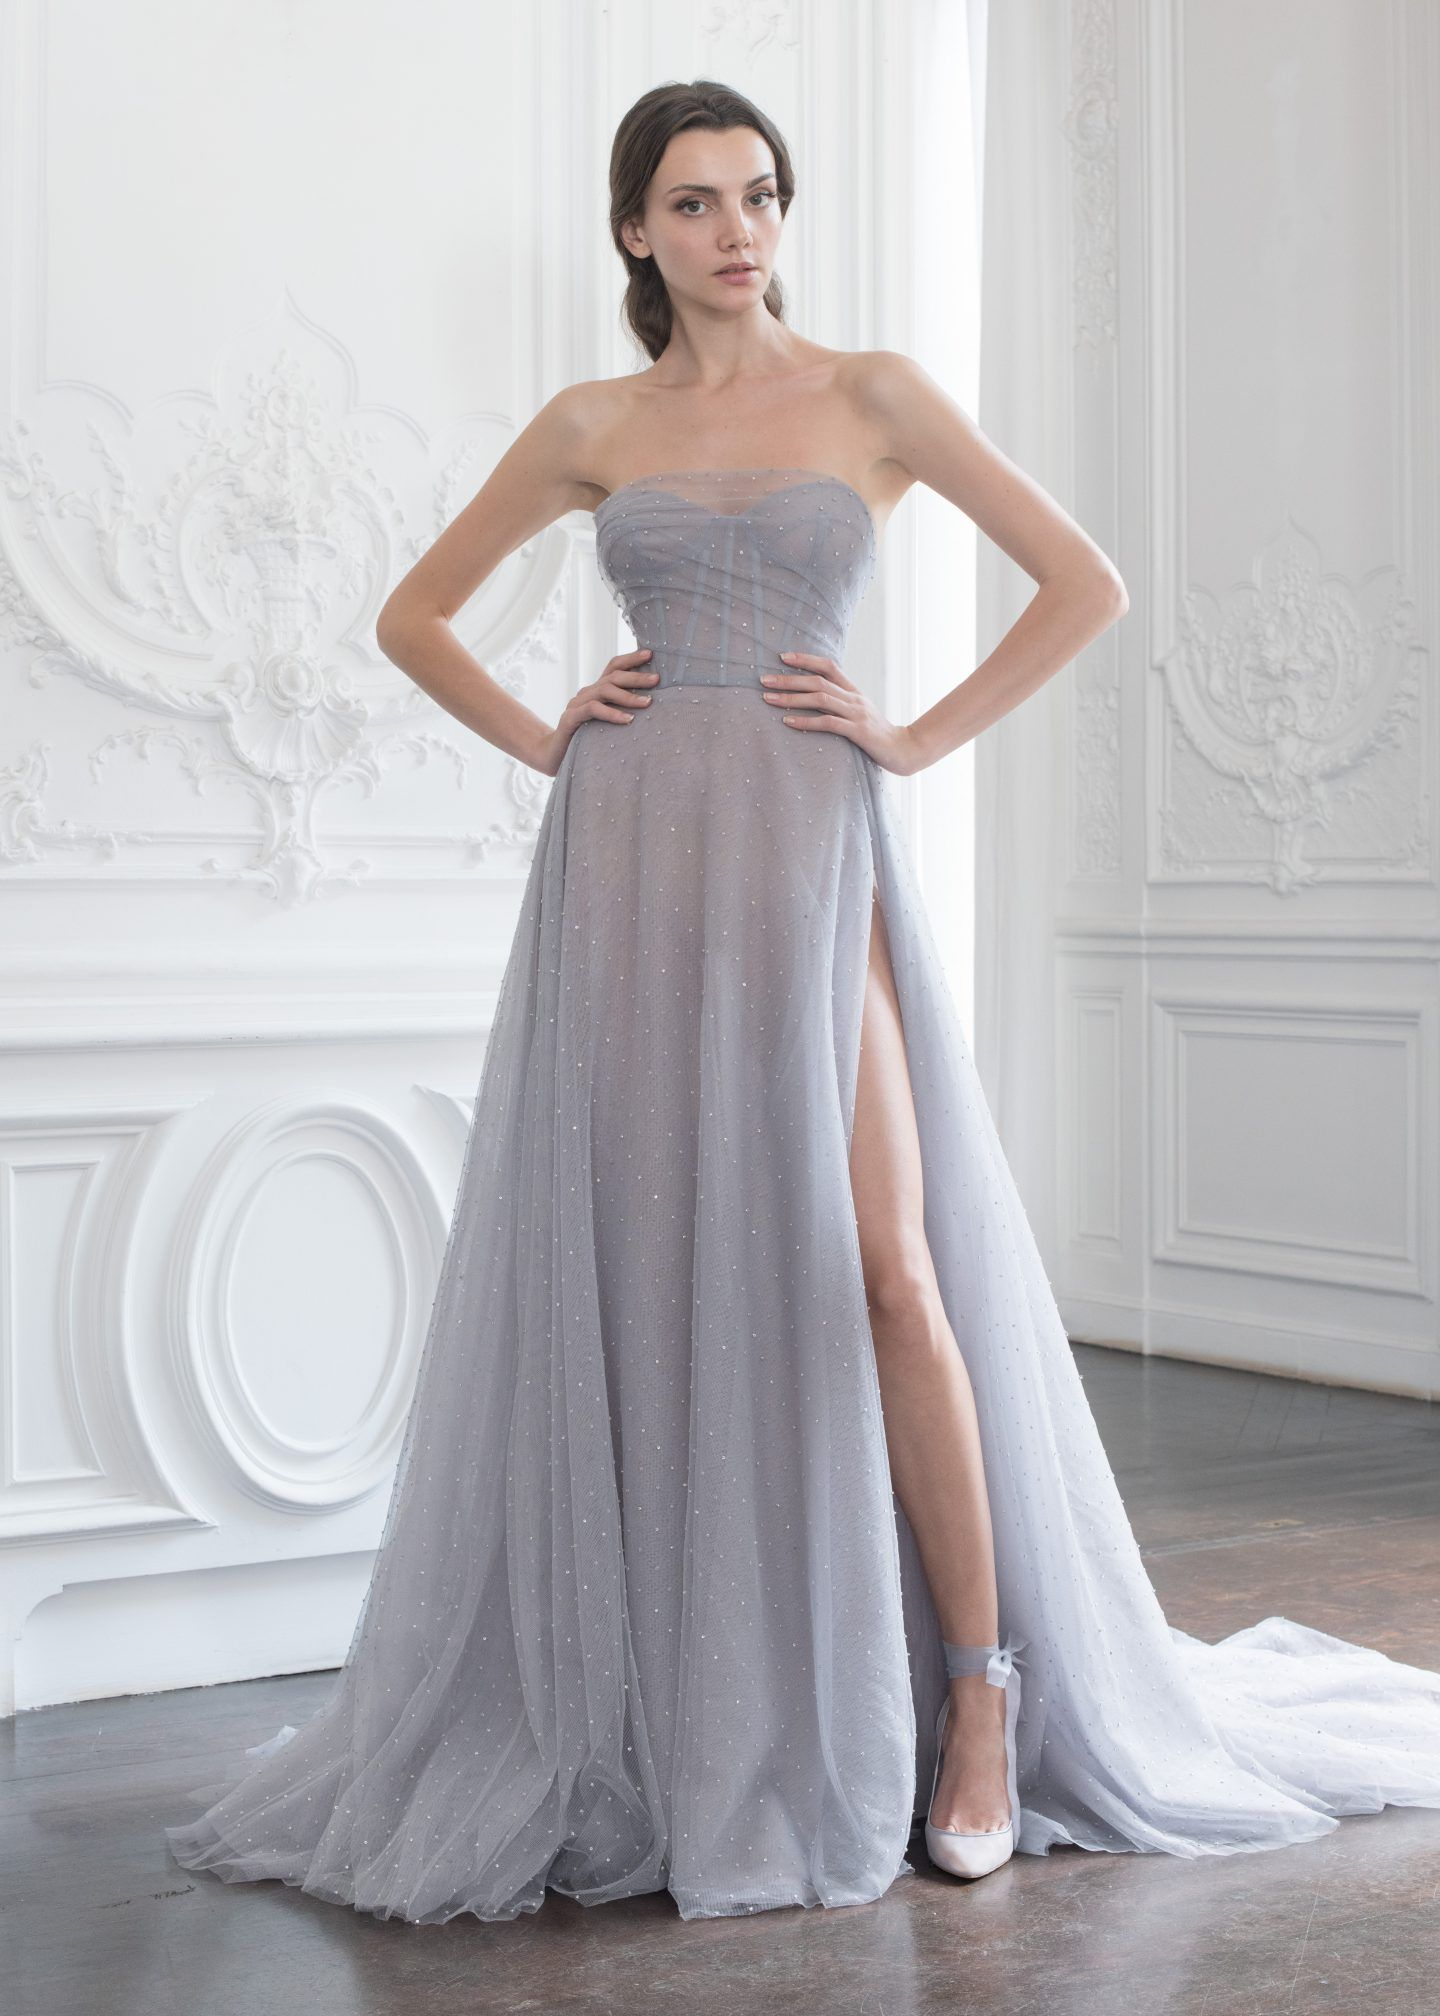 The nutcracker paolo sebastian the white files f gowns